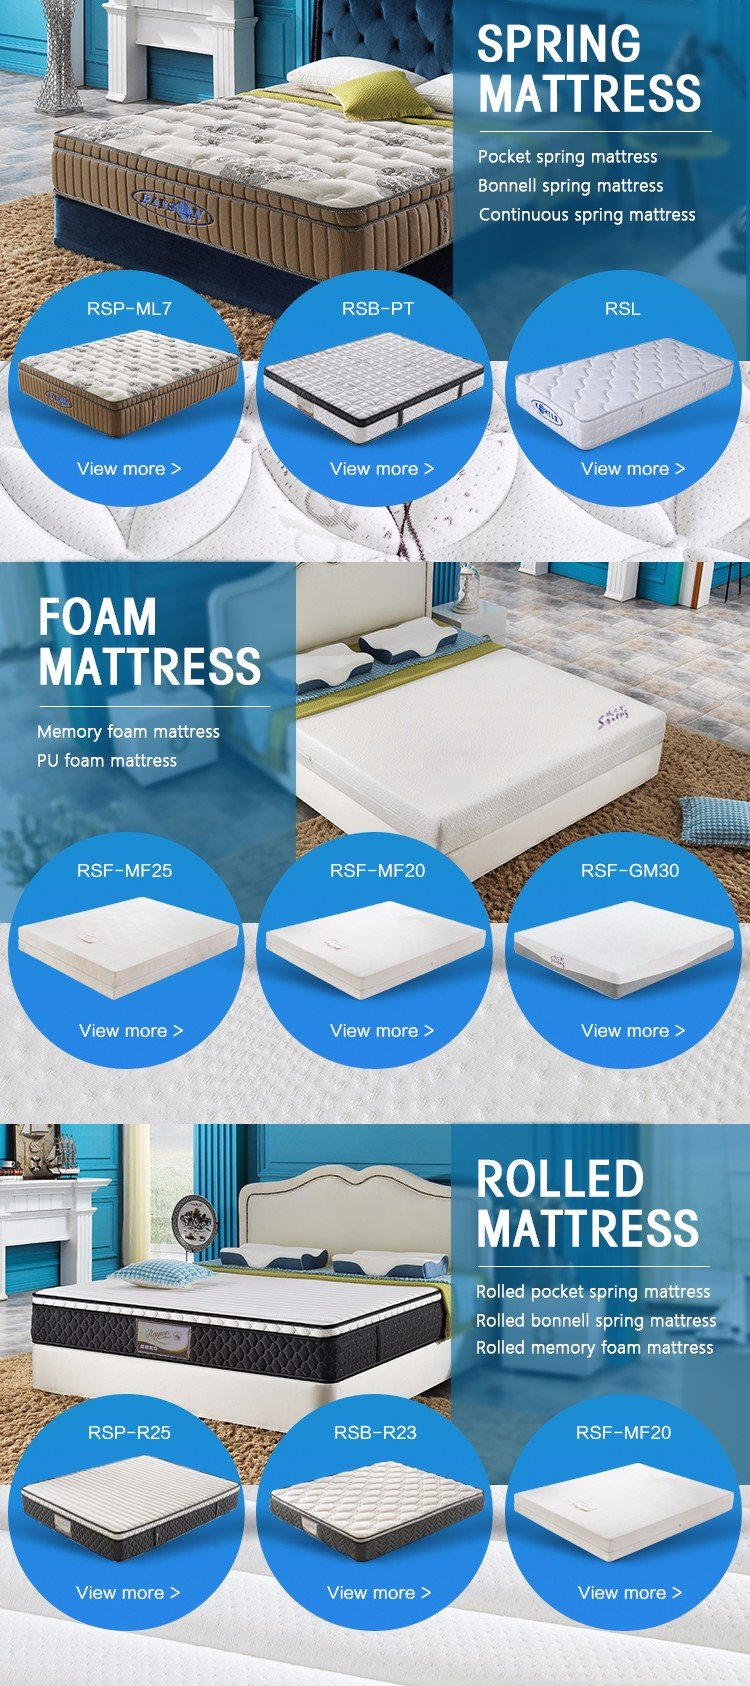 Rayson Mattress high quality Rolled bonnell spring mattress Suppliers-10